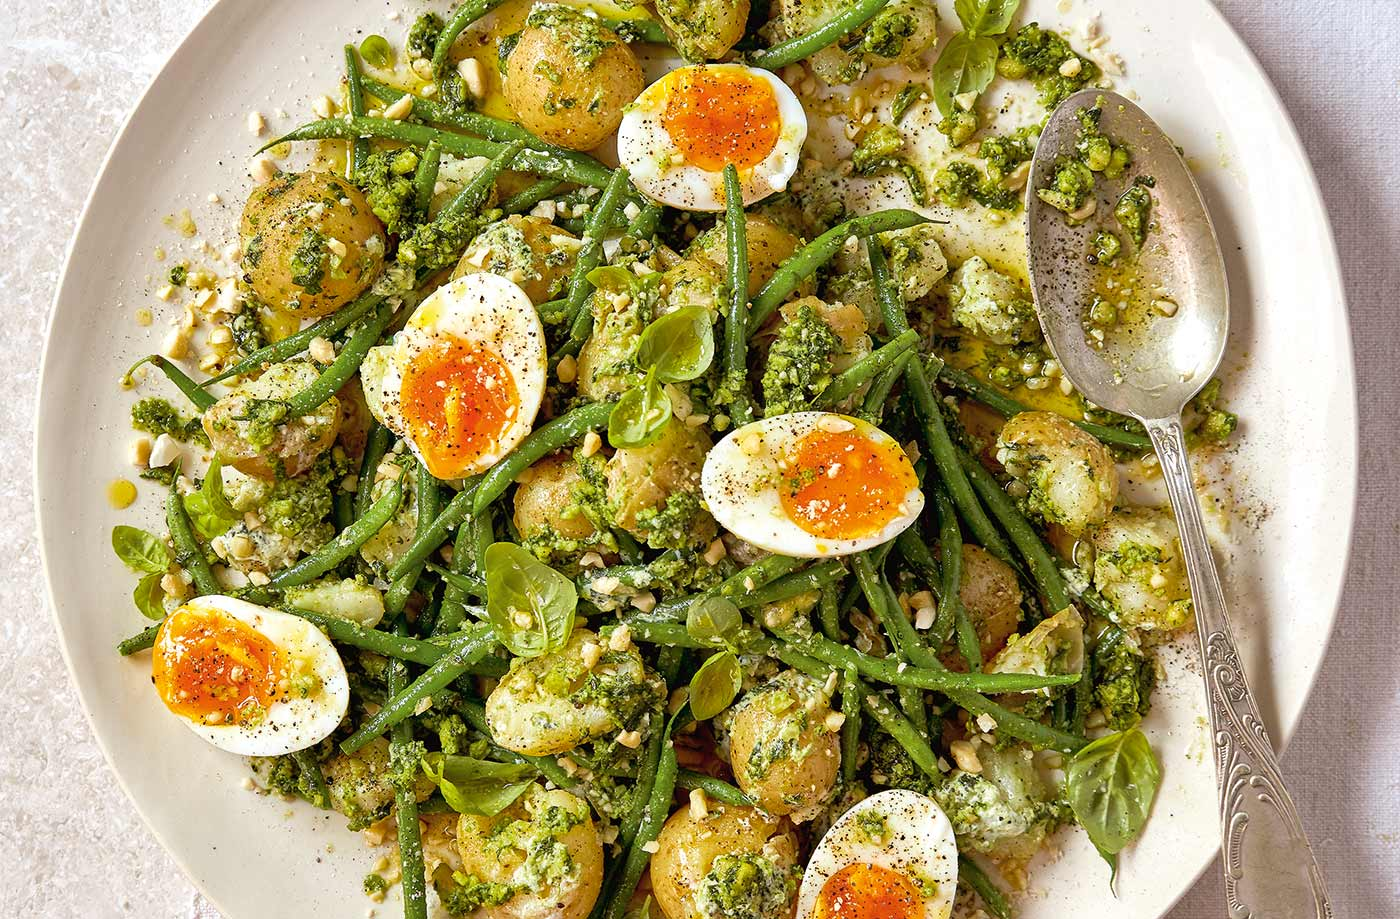 Potato and green bean salad recipe